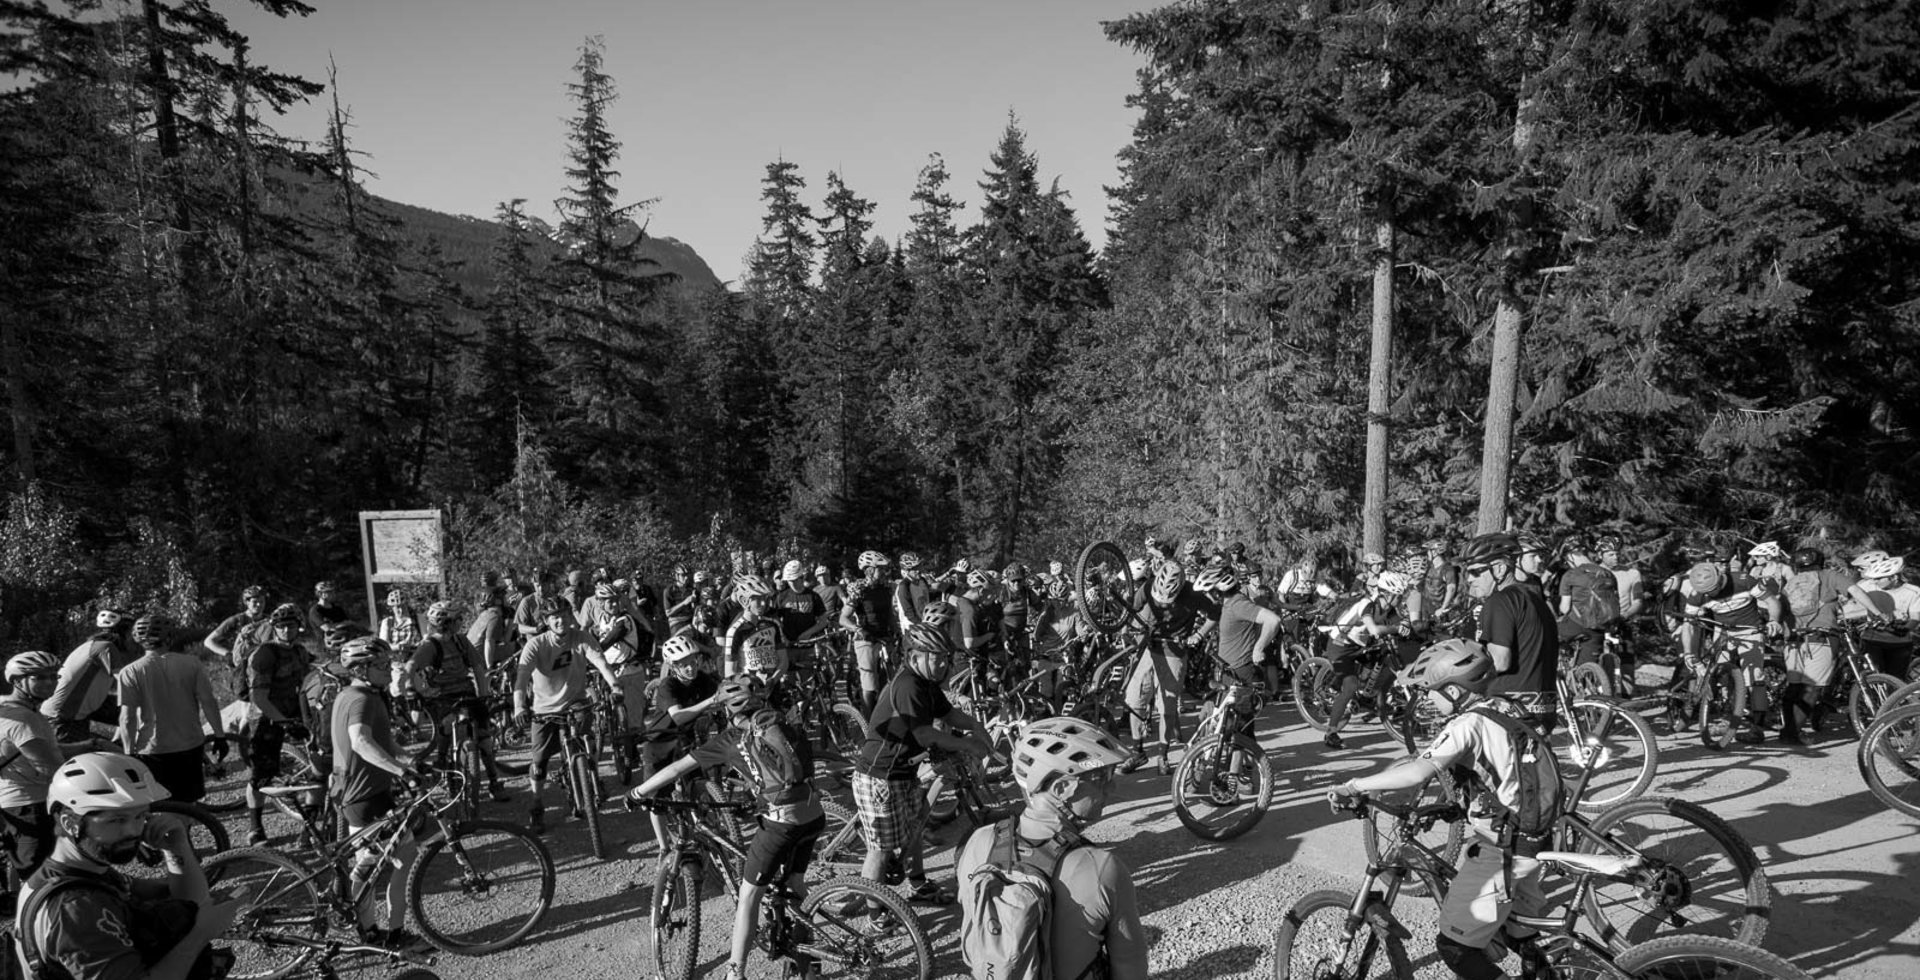 A crowd of two- to three-hundred mountain bikers isn't an uncommon sight at a Toonie race these days. It's far from the ride's humble beginnings, but a testimony to the community it has built. Photo courtesy of Tourism Whistler / Justa Jeskova